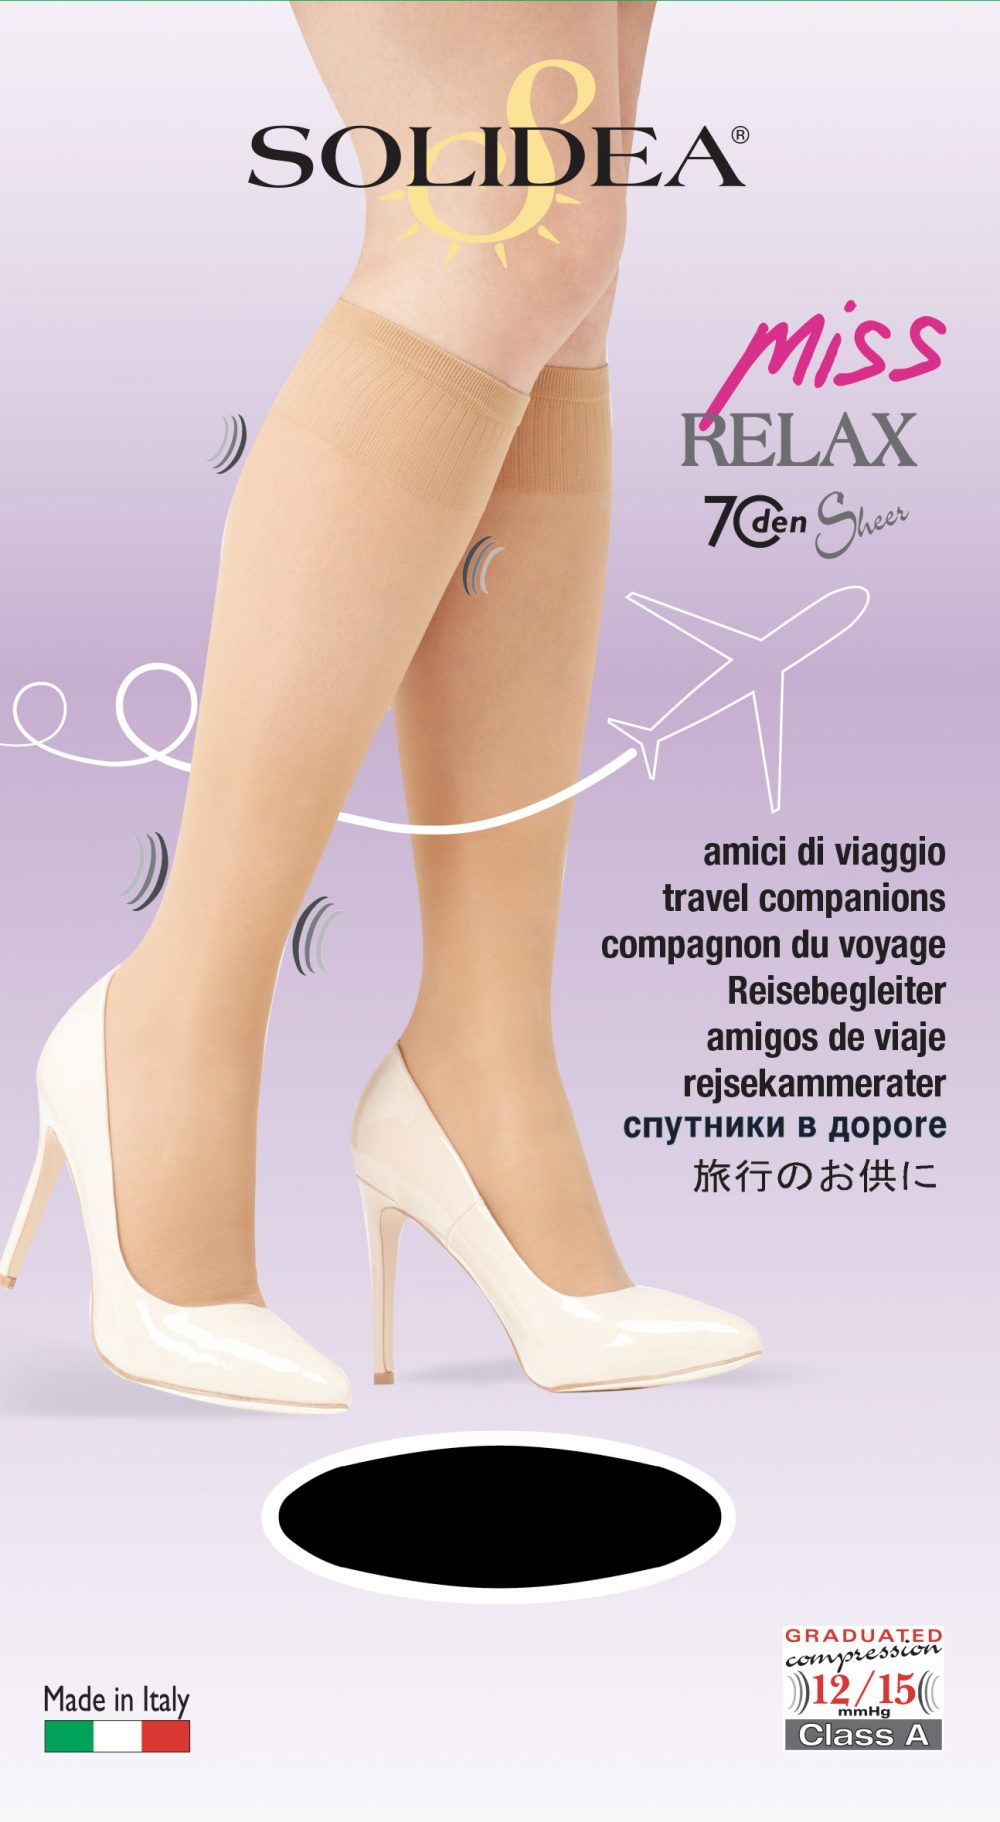 SOLIDEA MISS RELAX 70